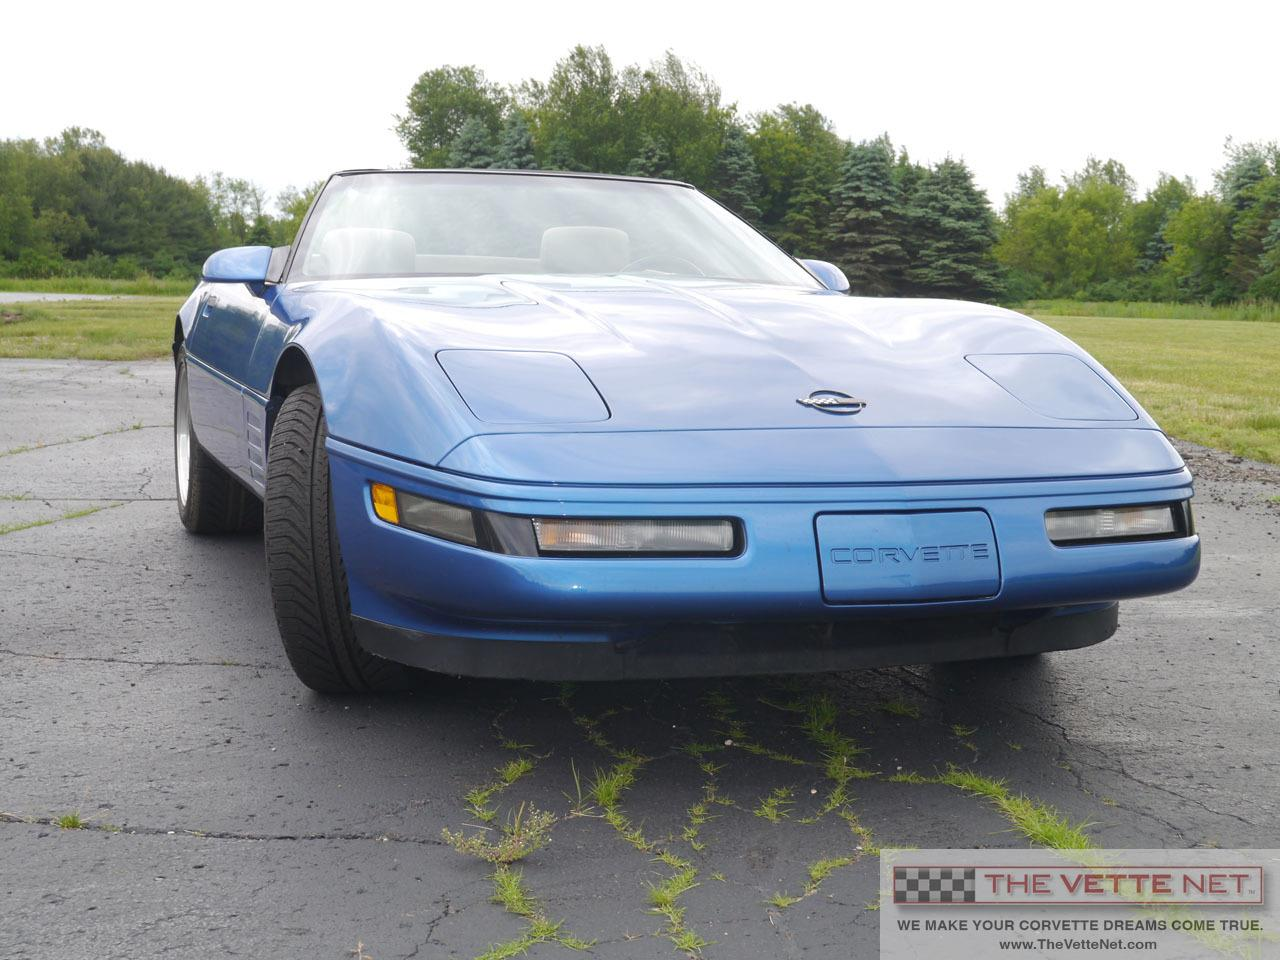 Large Picture of '93 Chevrolet Corvette located in Florida - $14,990.00 Offered by The Vette Net - L7AW